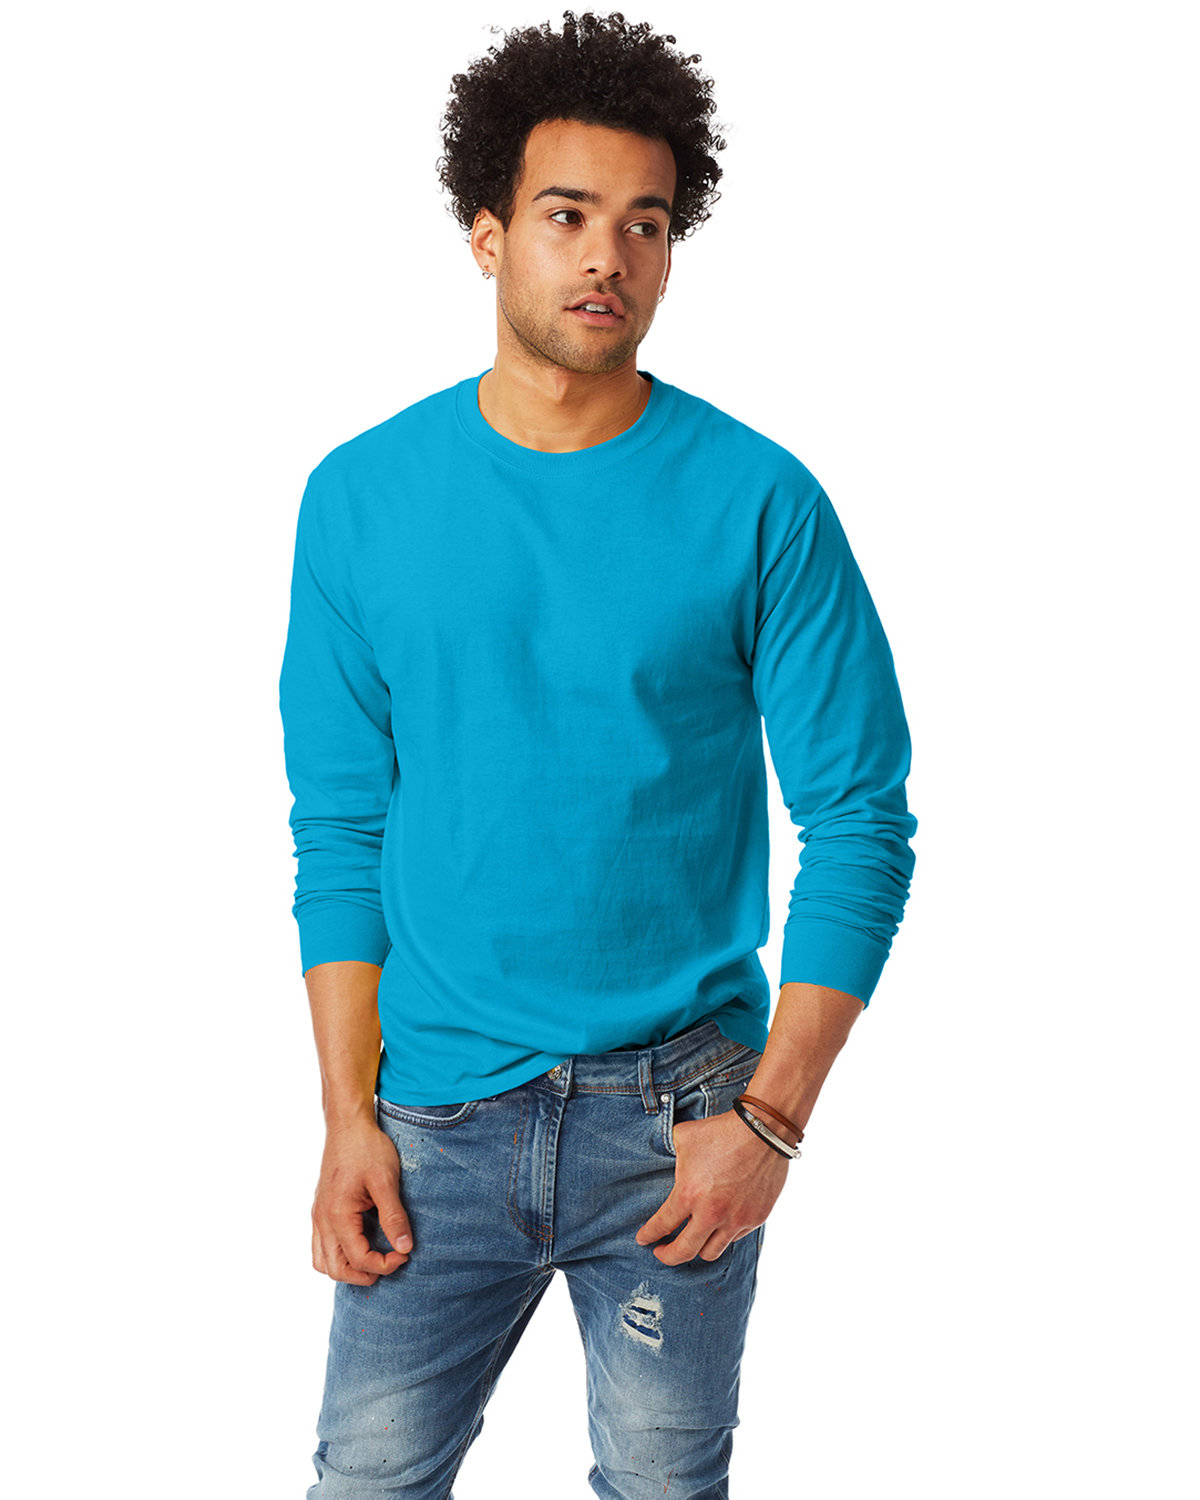 Hanes Adult Authentic-T Long-Sleeve T-Shirt TEAL